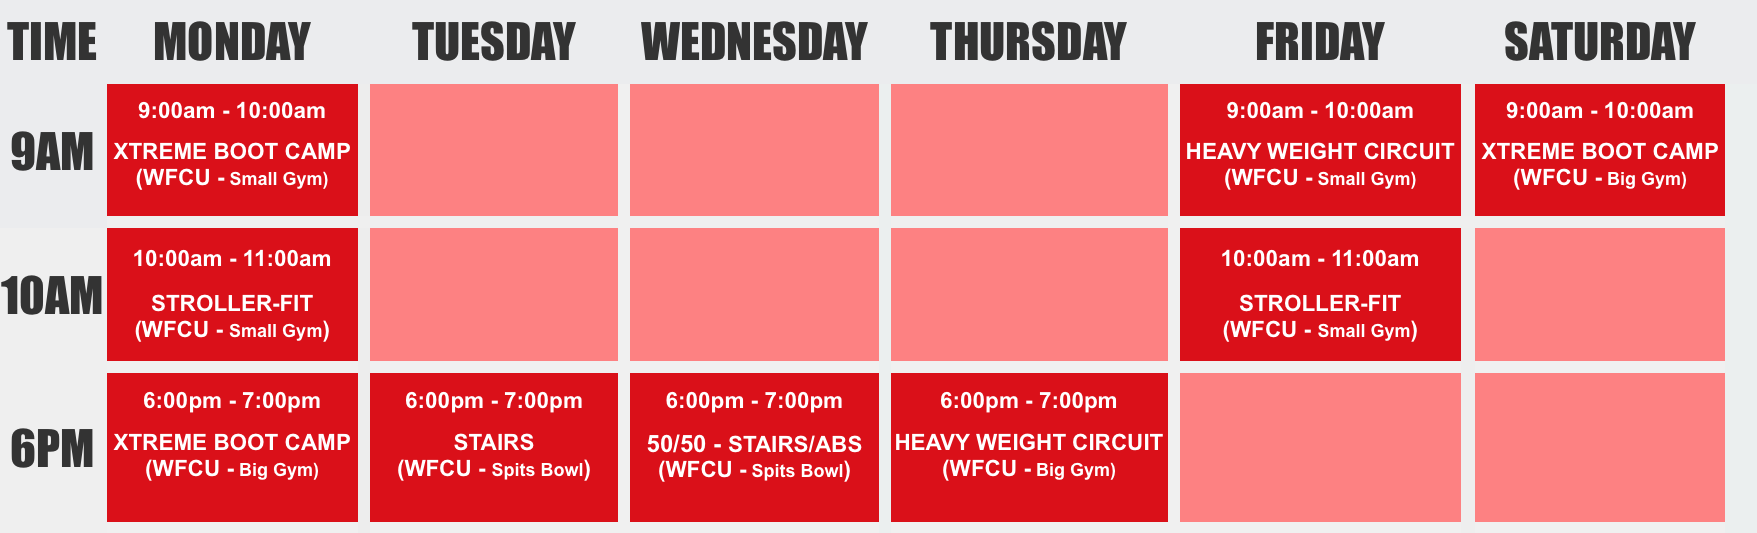 axfit-windsor-fitness-boot-camp-schedule-danielle-chevalier